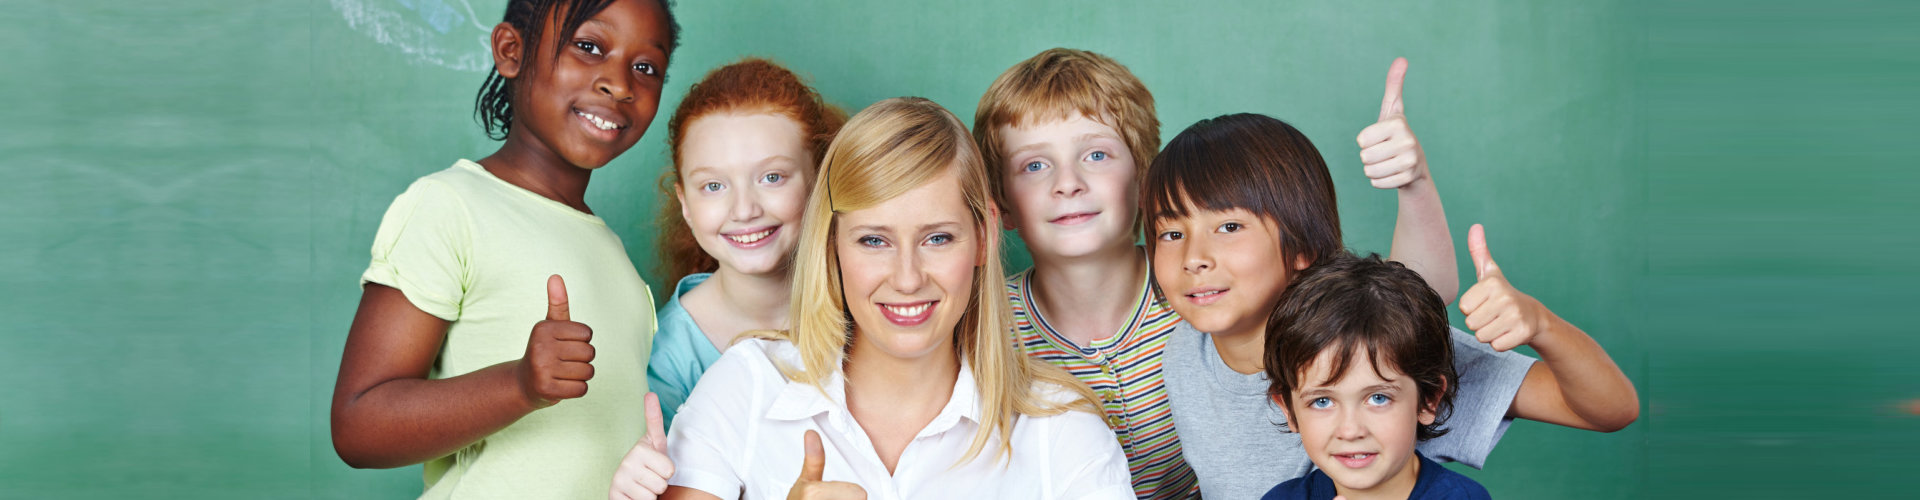 teacher with her students smiling